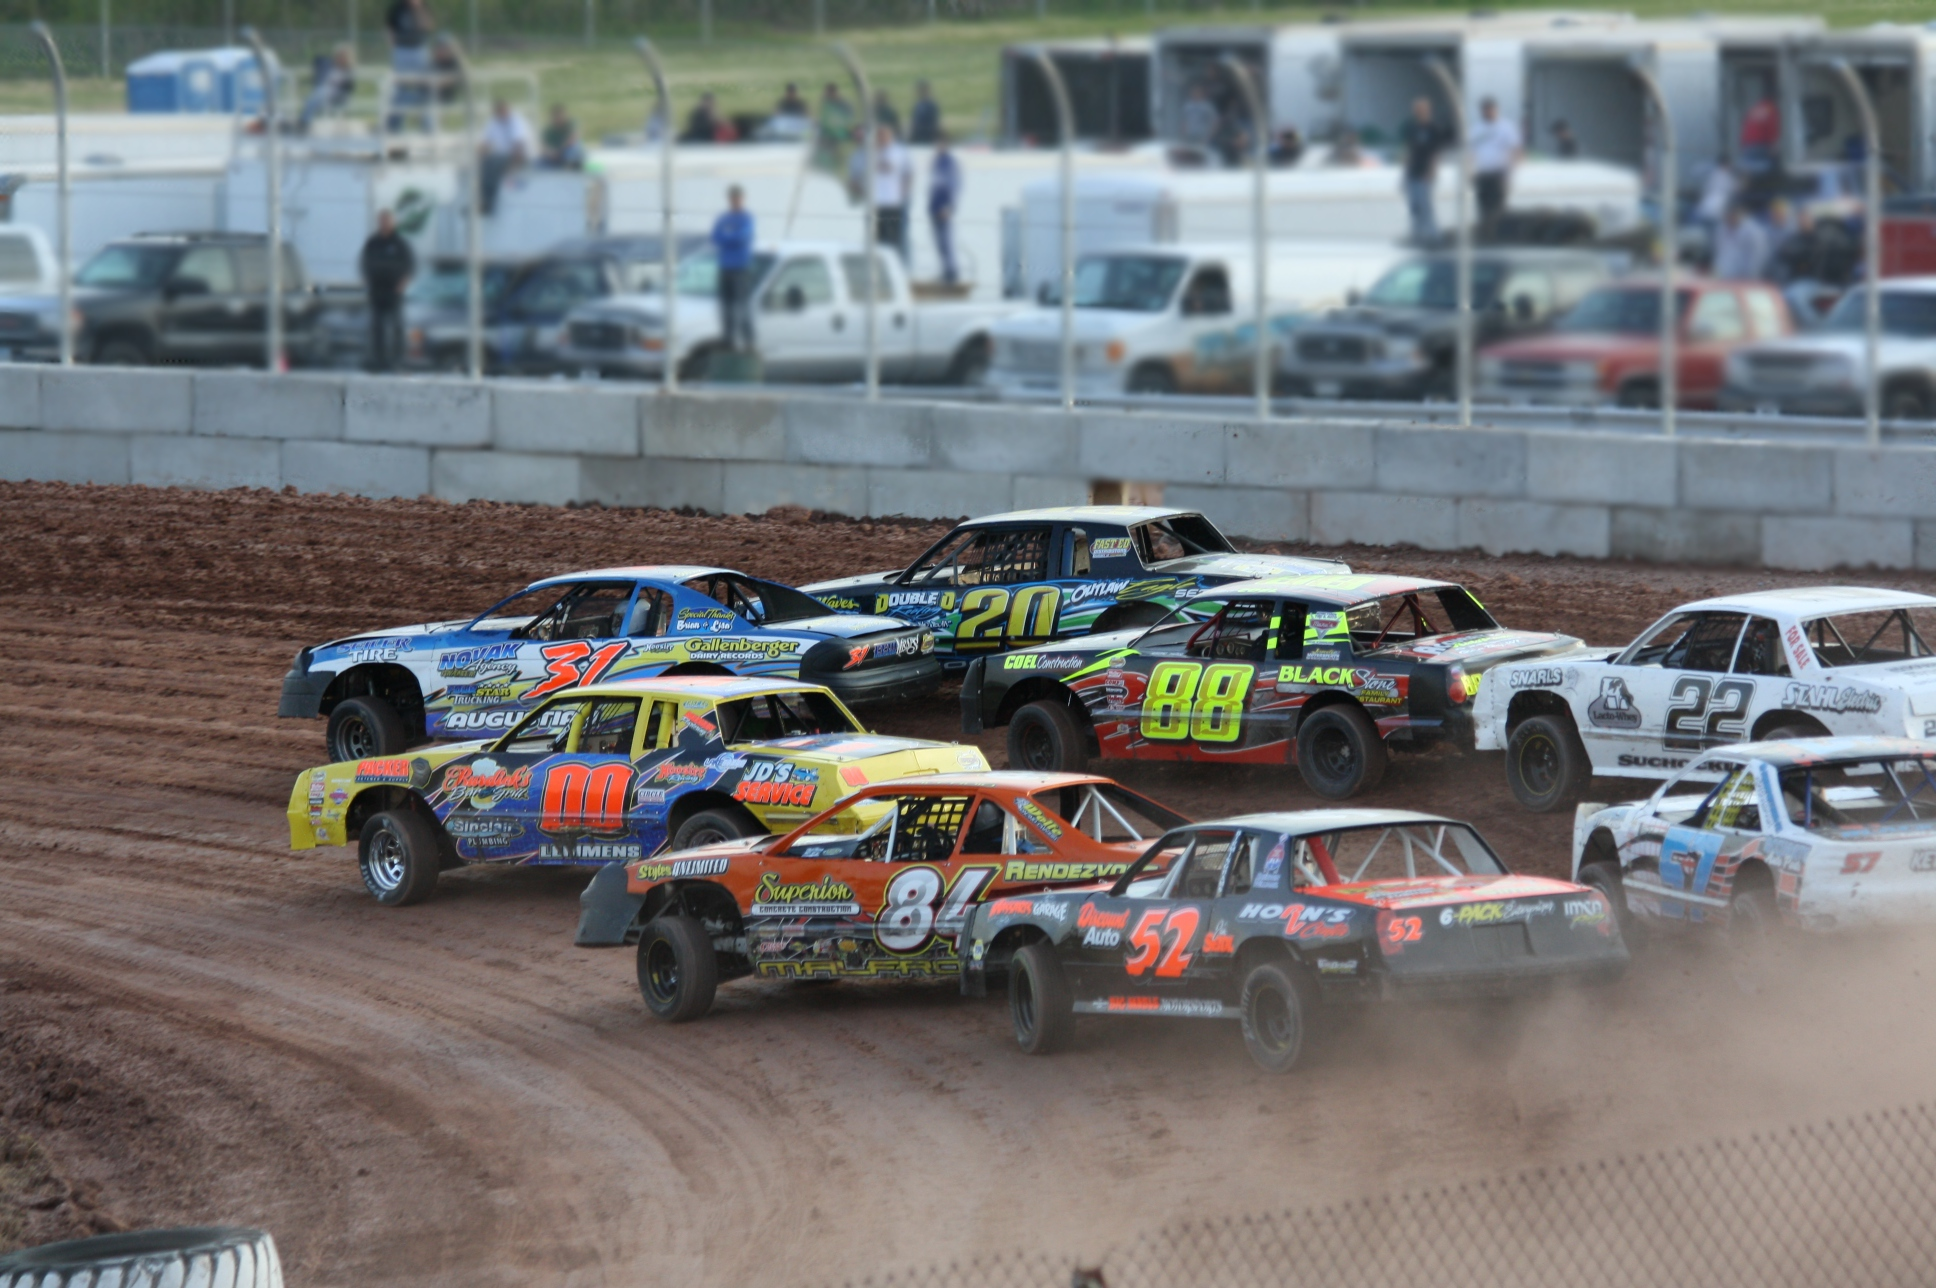 Speedway cars for sale nz